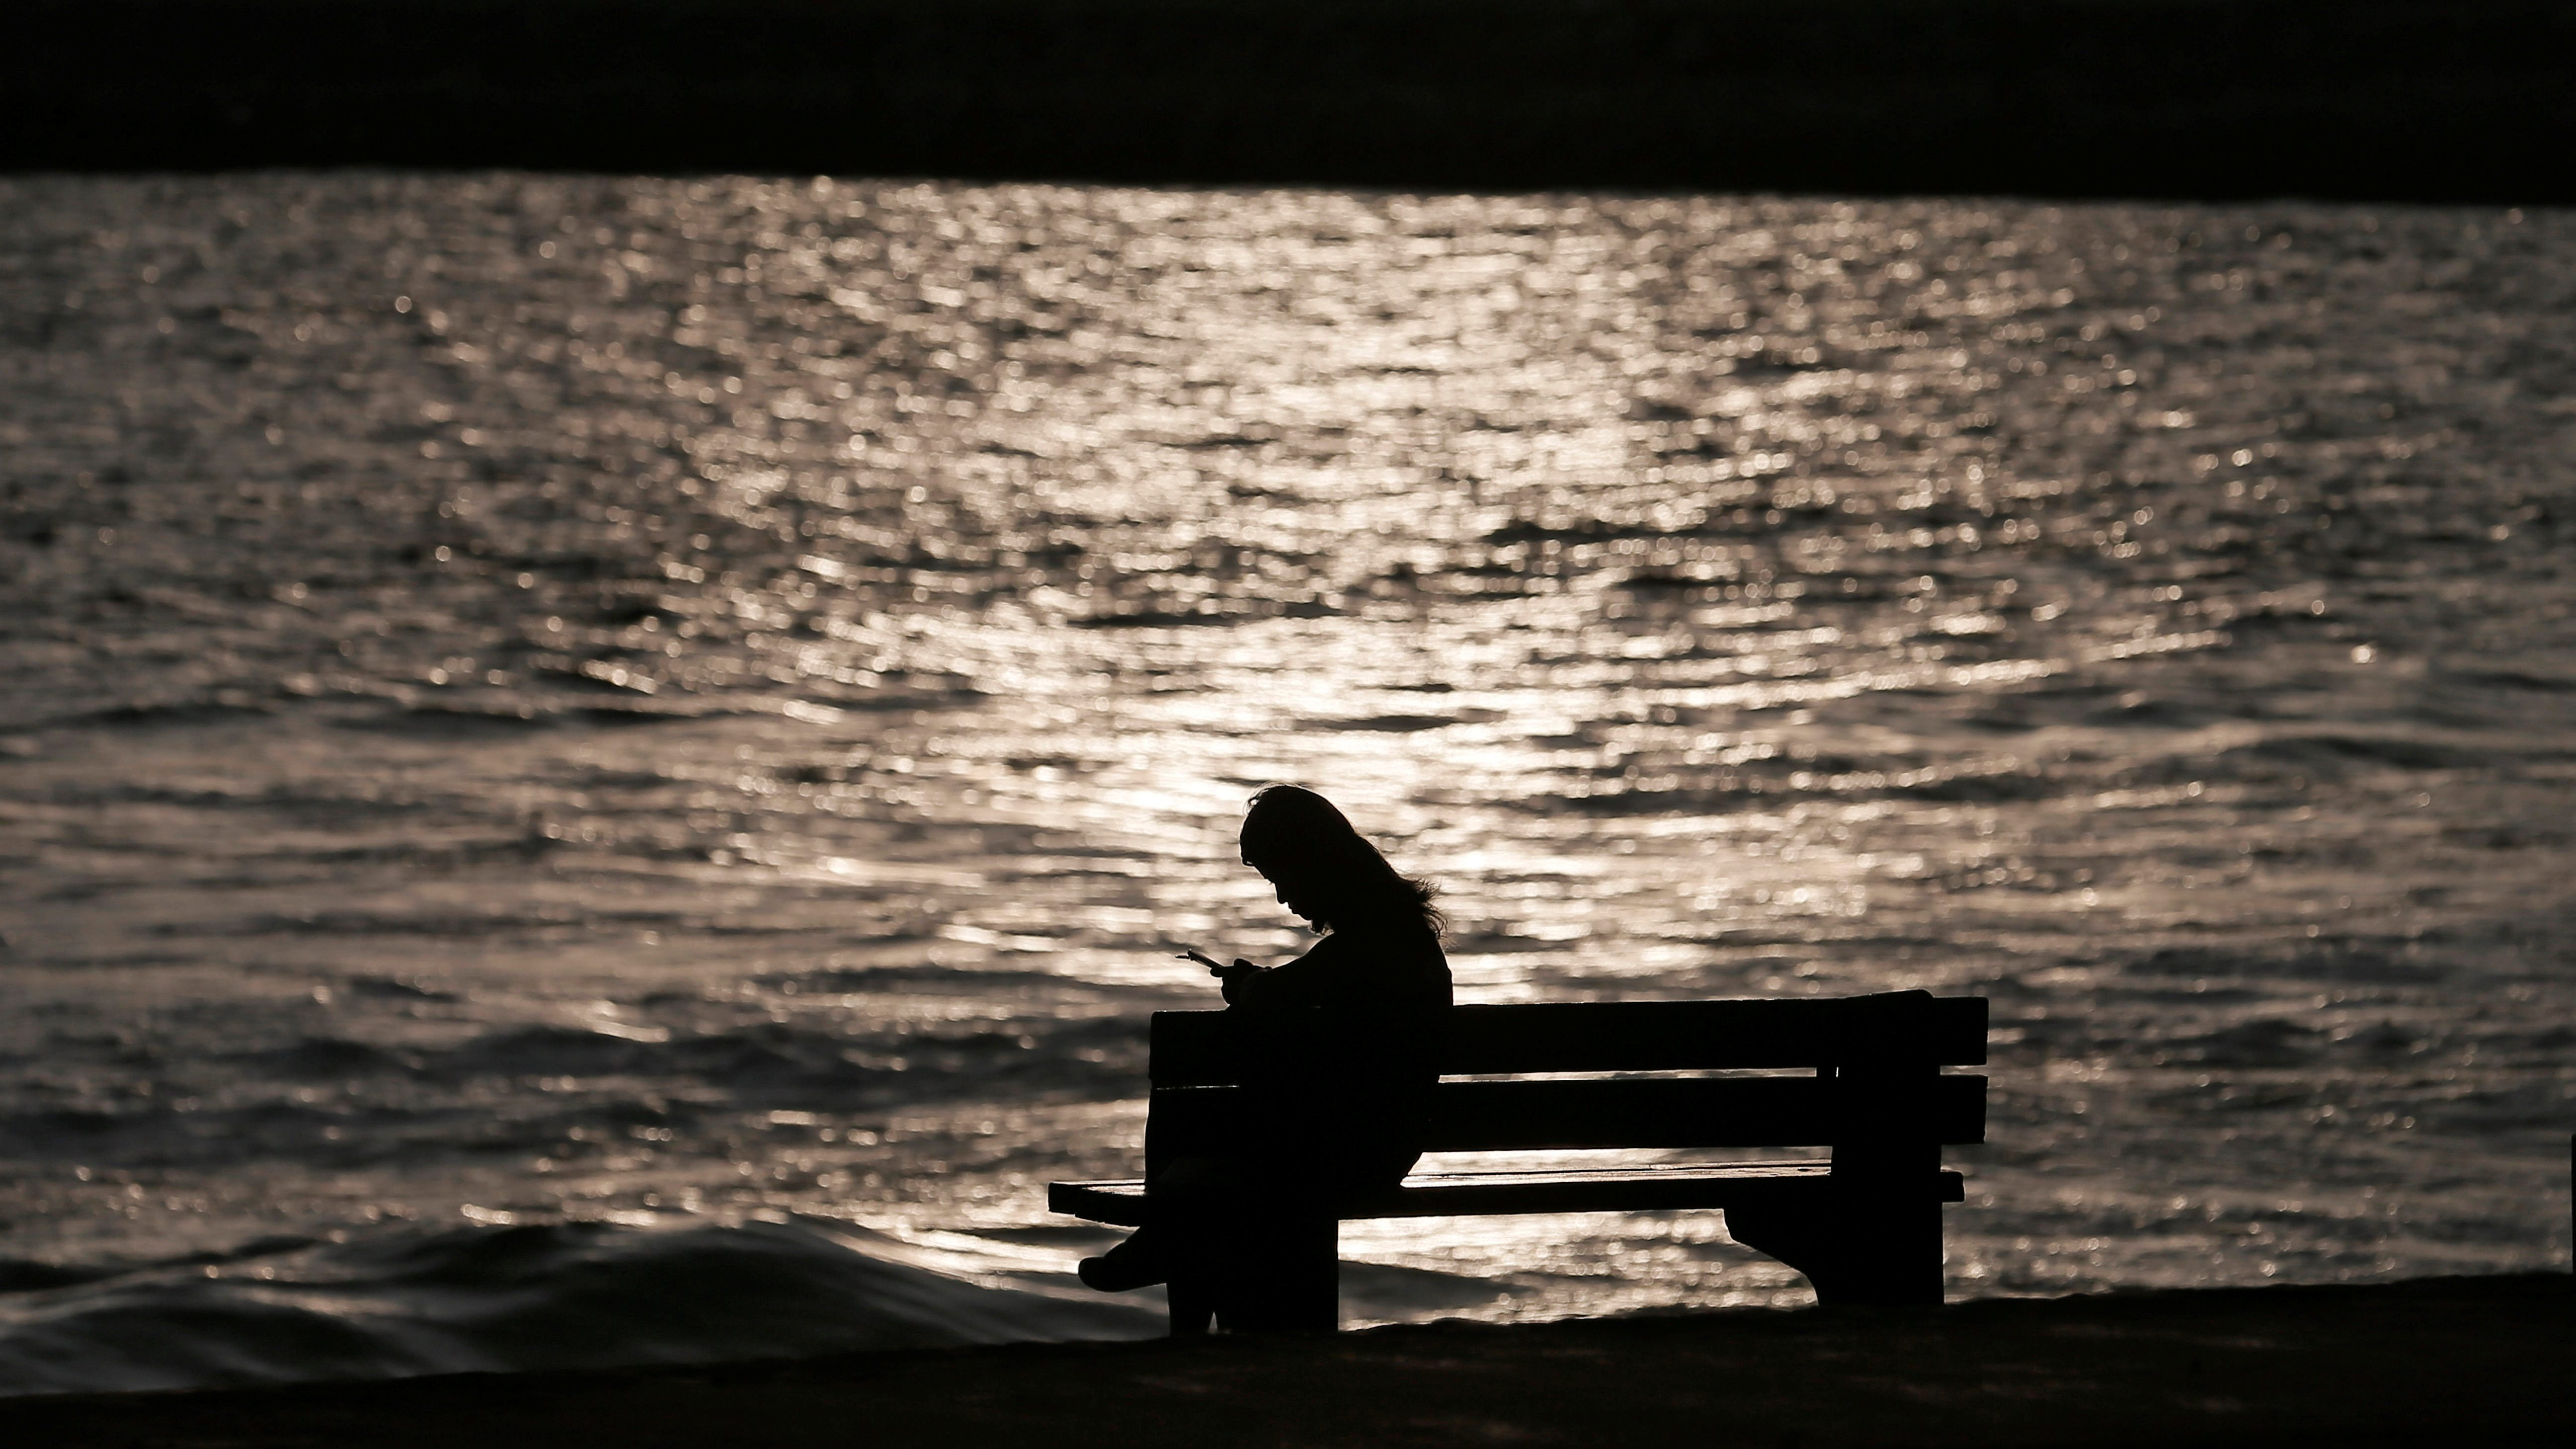 A woman sits alone on a bench while using her mobile phone as the sun sets at a beach.